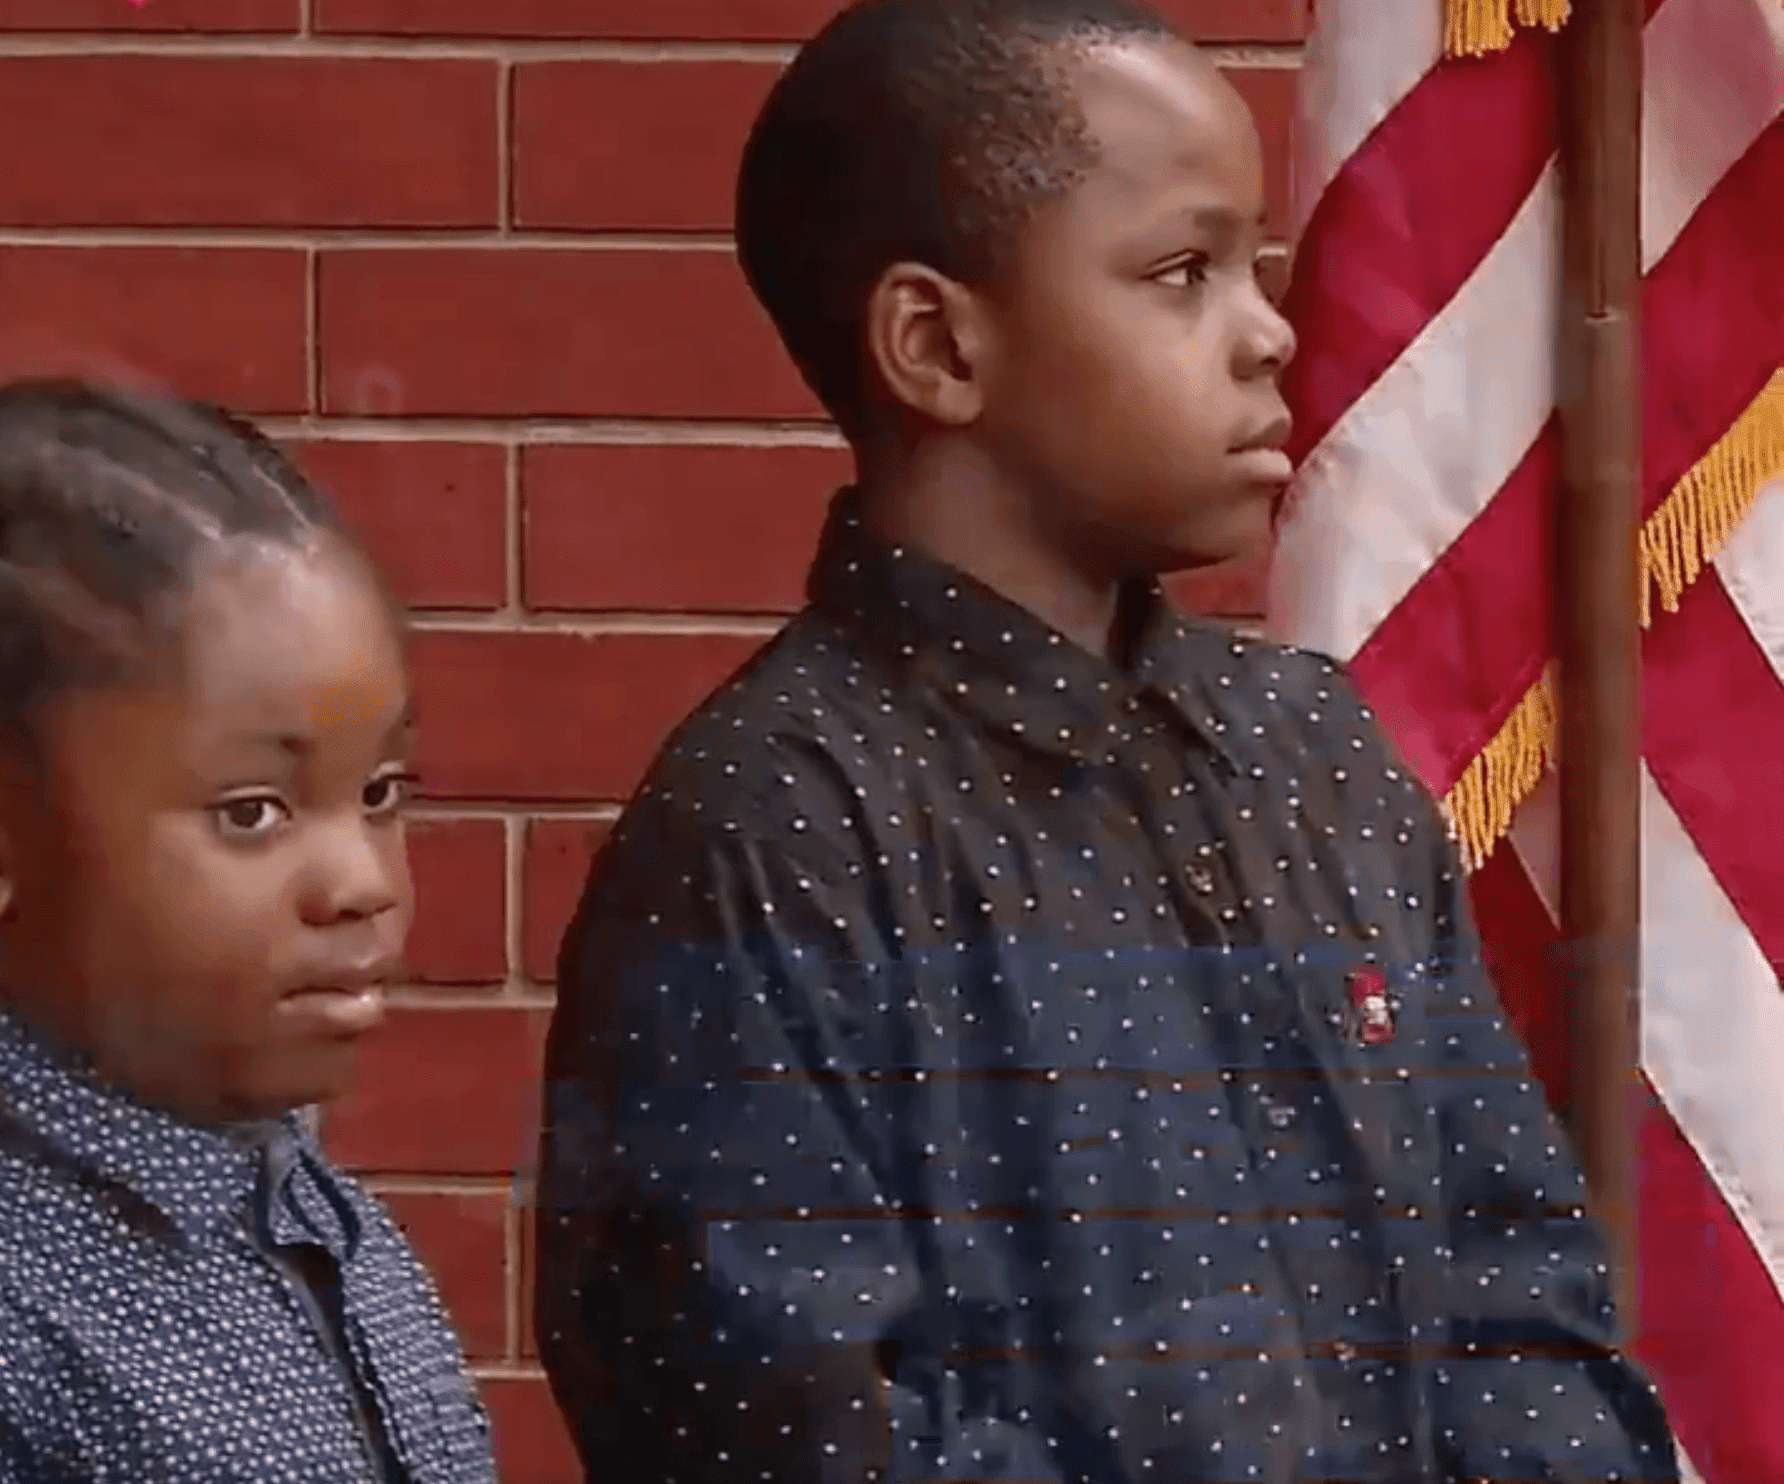 The boys, Derrick and Thomas, who stopped to declare the Pledge of Allegiance | Photo: Twitter/CBS News